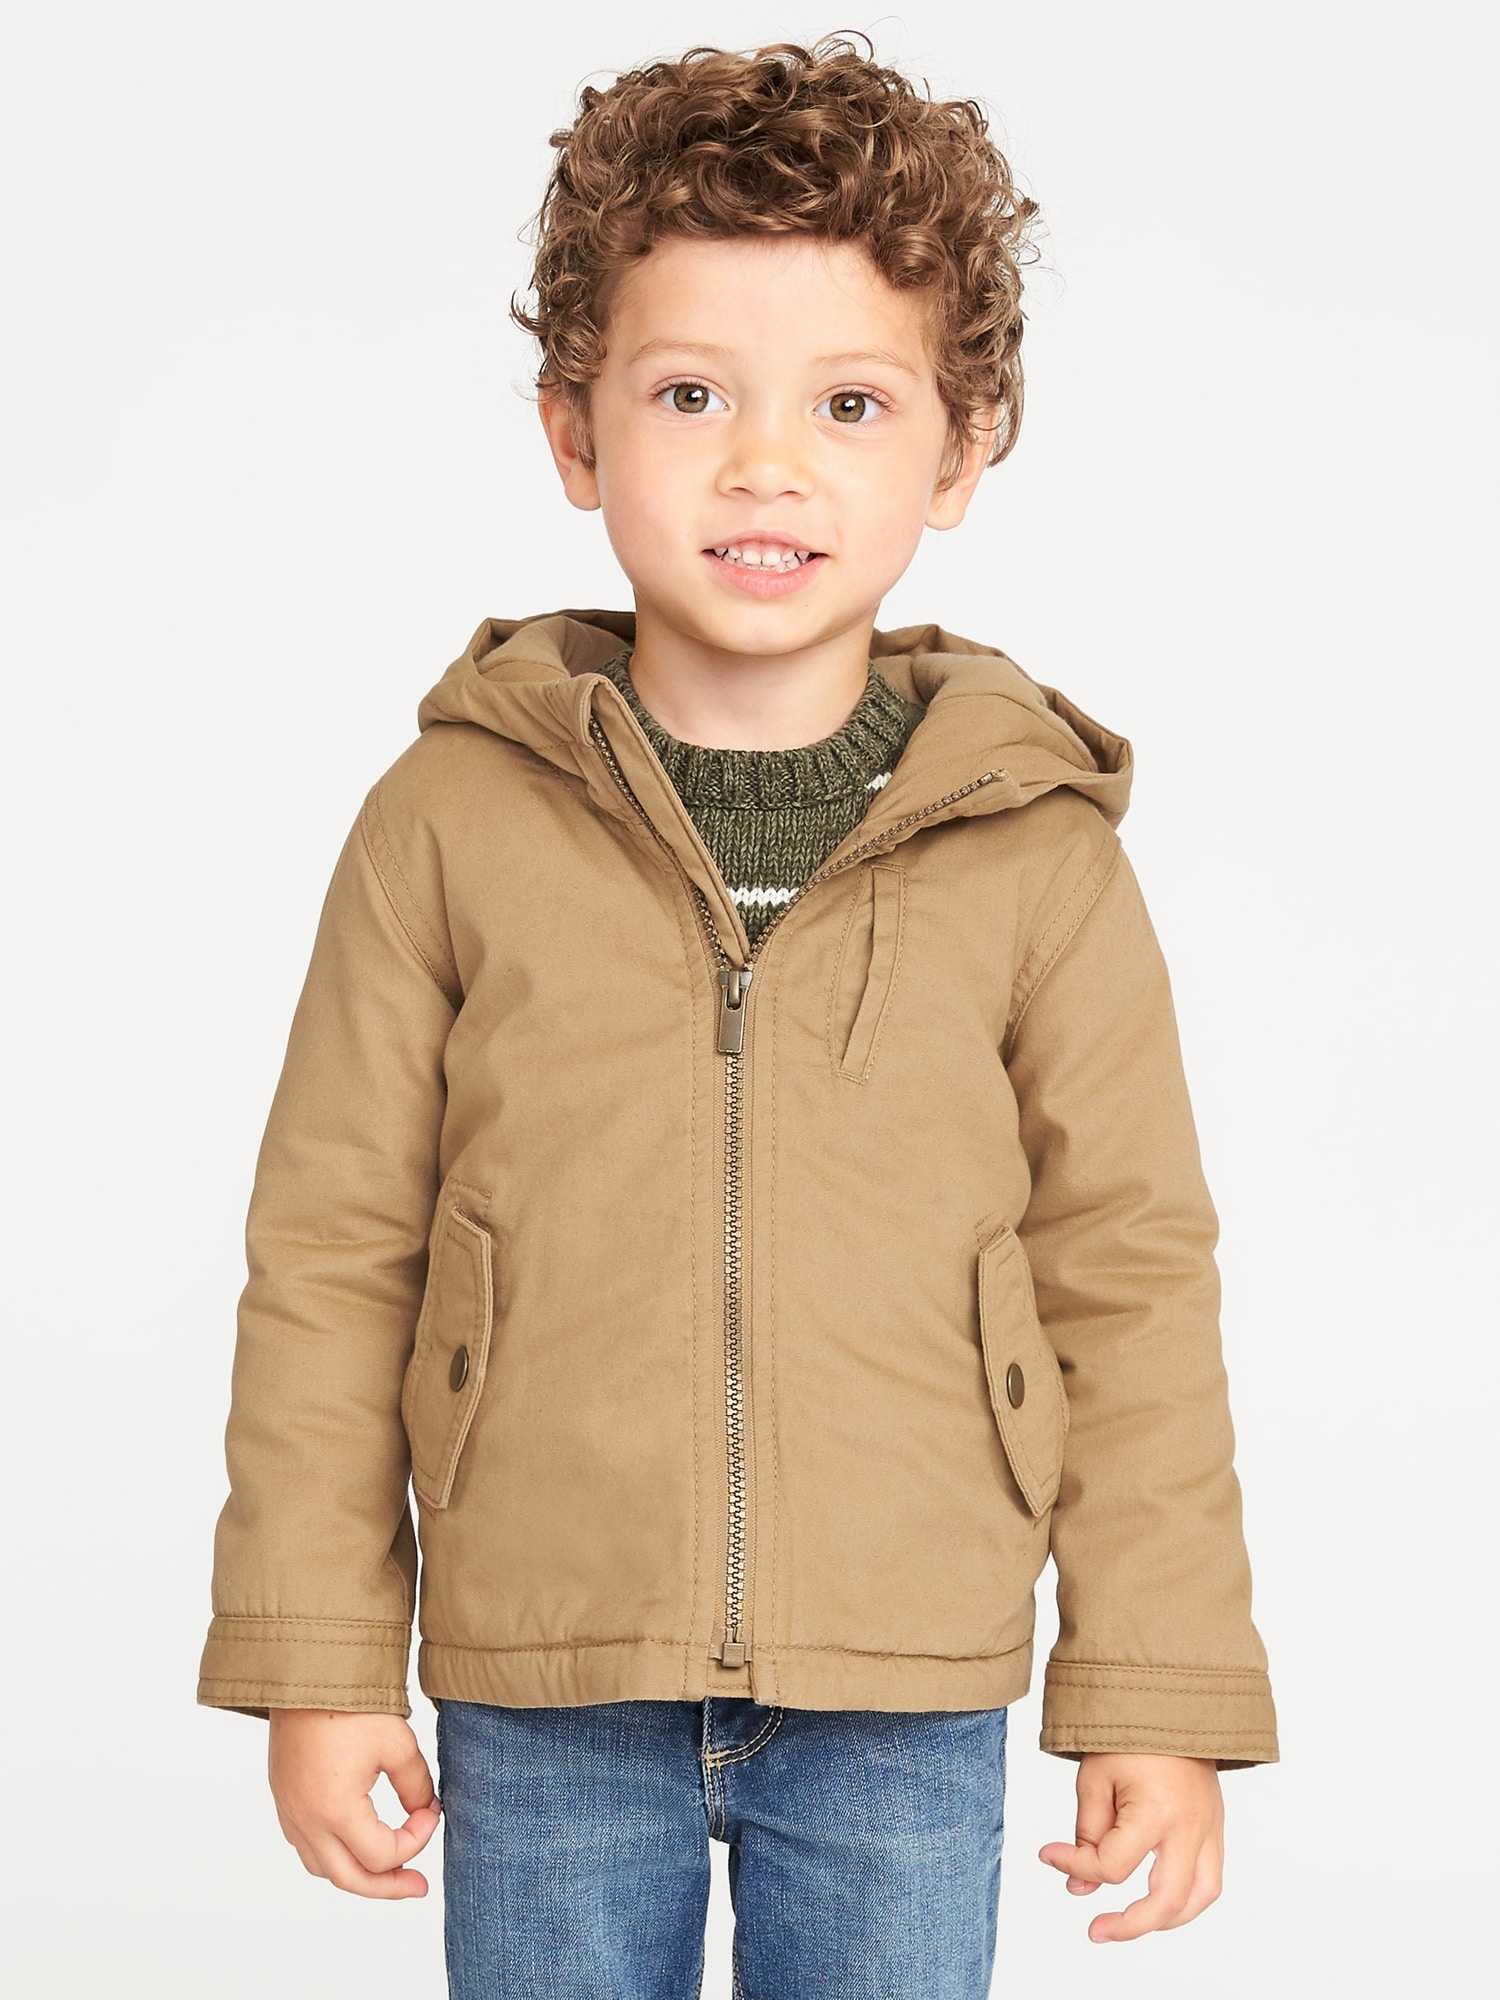 Hooded Canvas Utility Jacket For Toddler Boys Old Navy Jaket Parka Blazer Baby Cotton